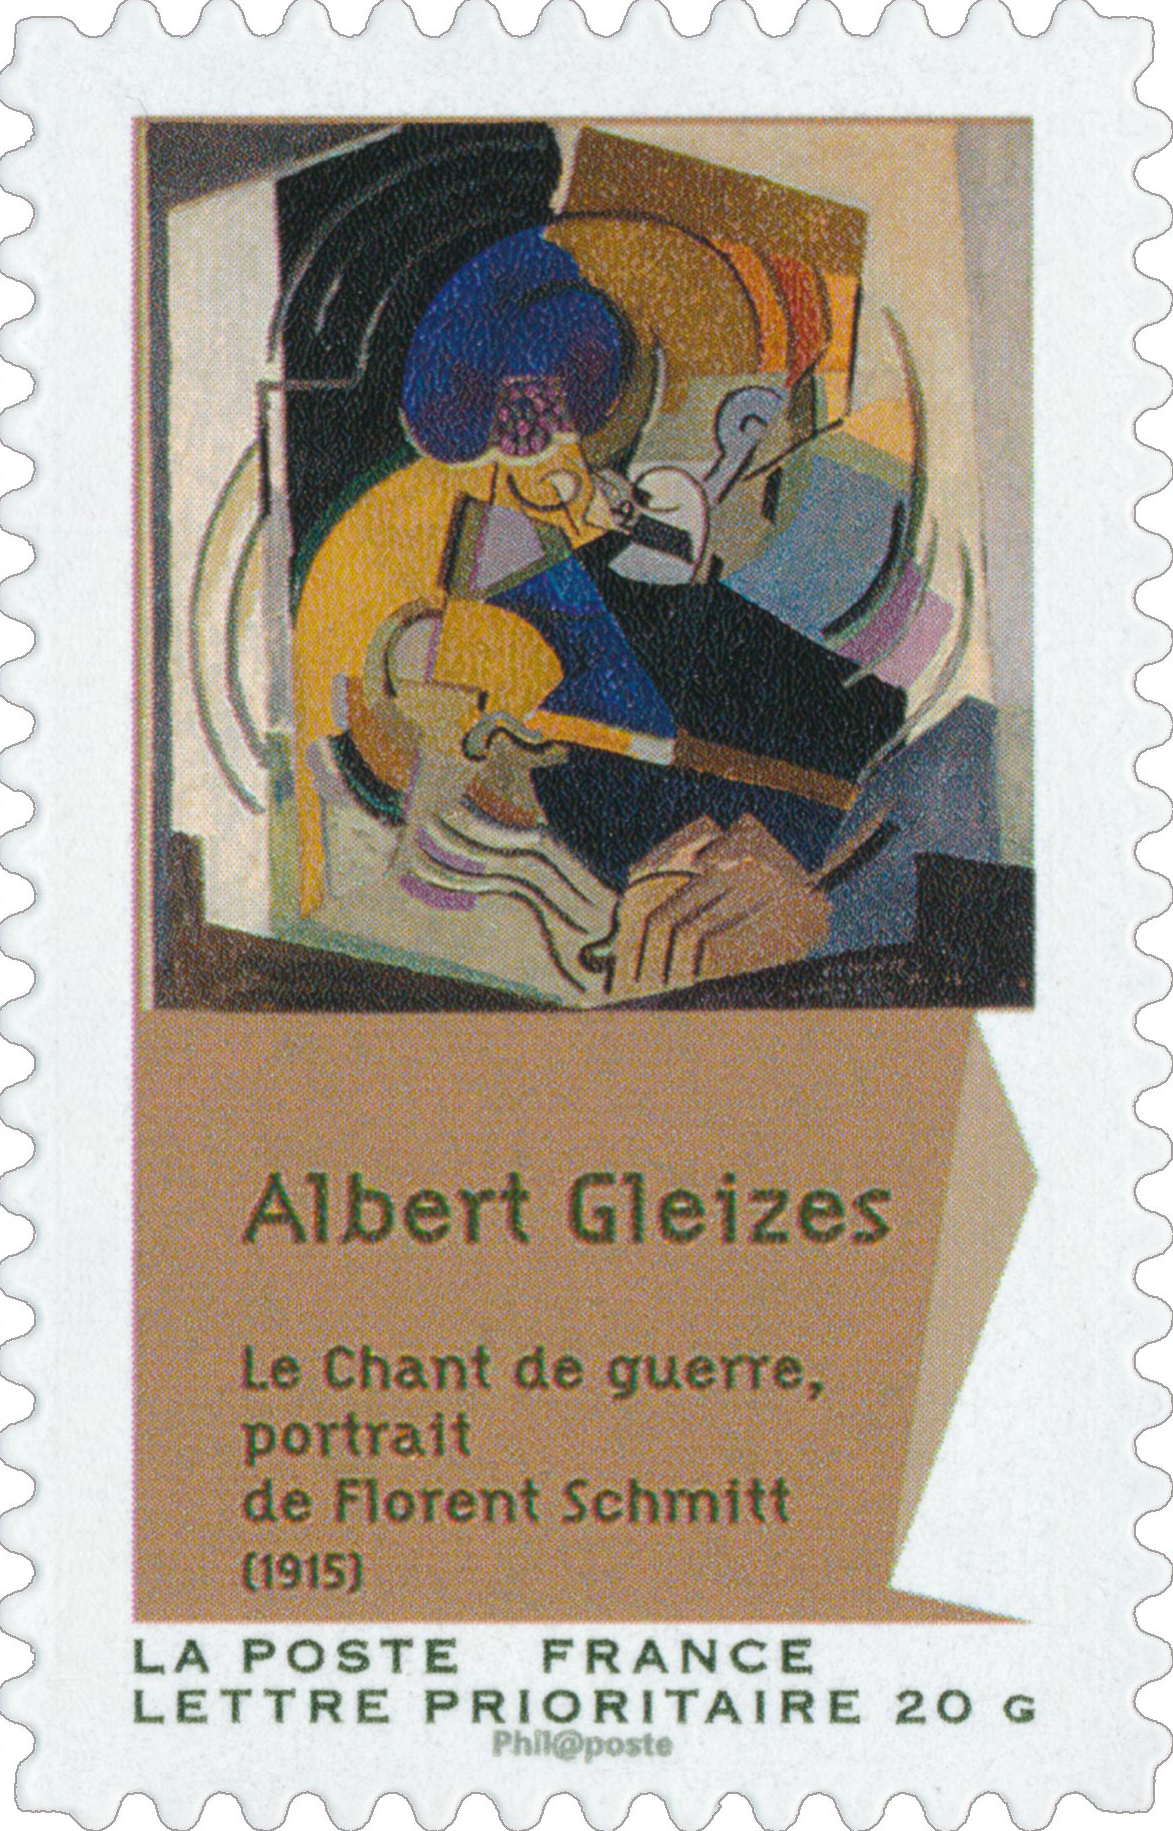 Filealbert Gleizes 1915 Le Chant De Guerre Portrait De